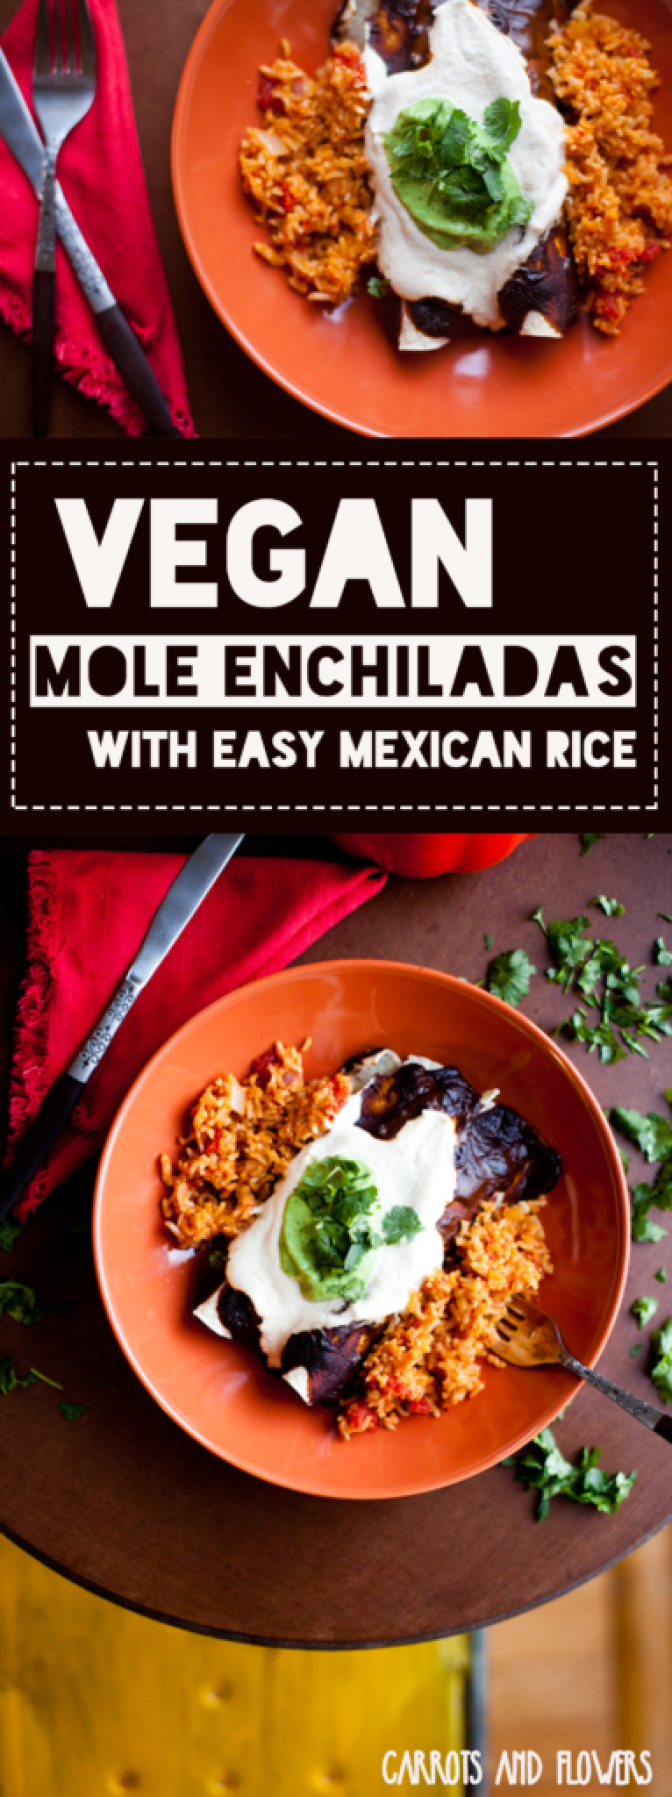 The BEST Vegan Enchiladas | Mole Enchiladas with Easy Mexican Rice | Family Dinner Recipe |